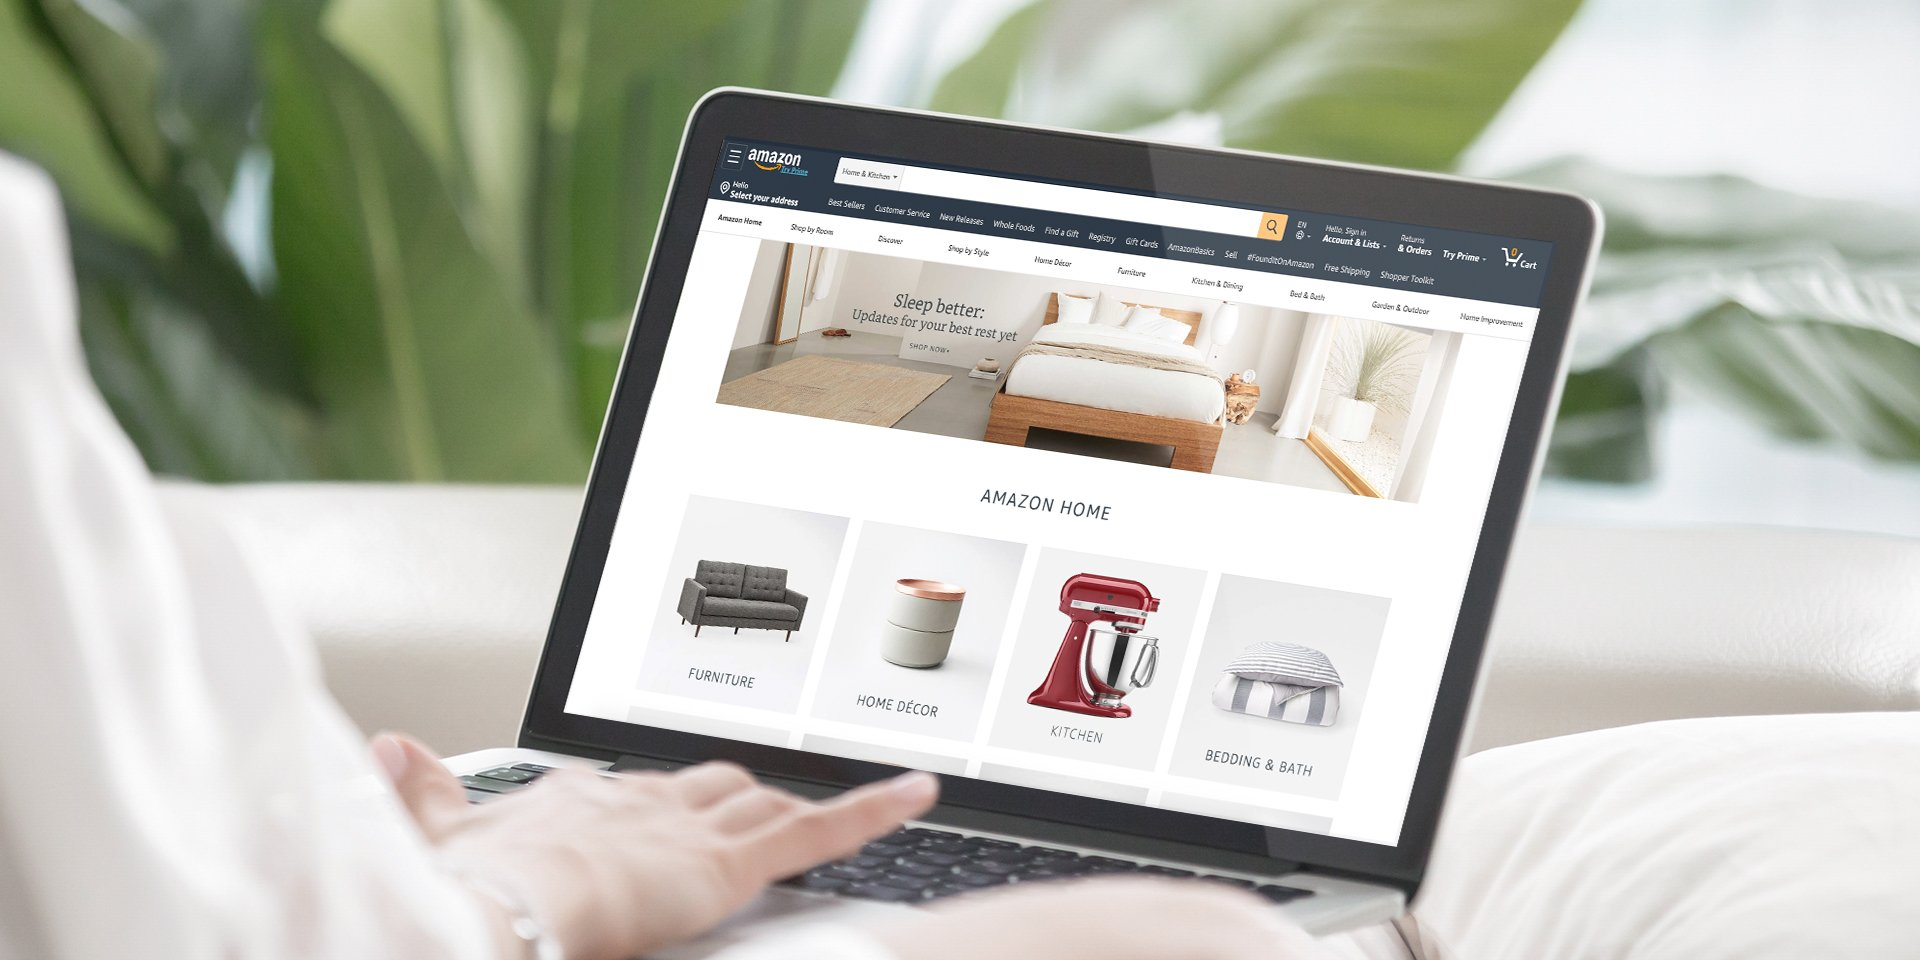 Shopping on Amazon Home